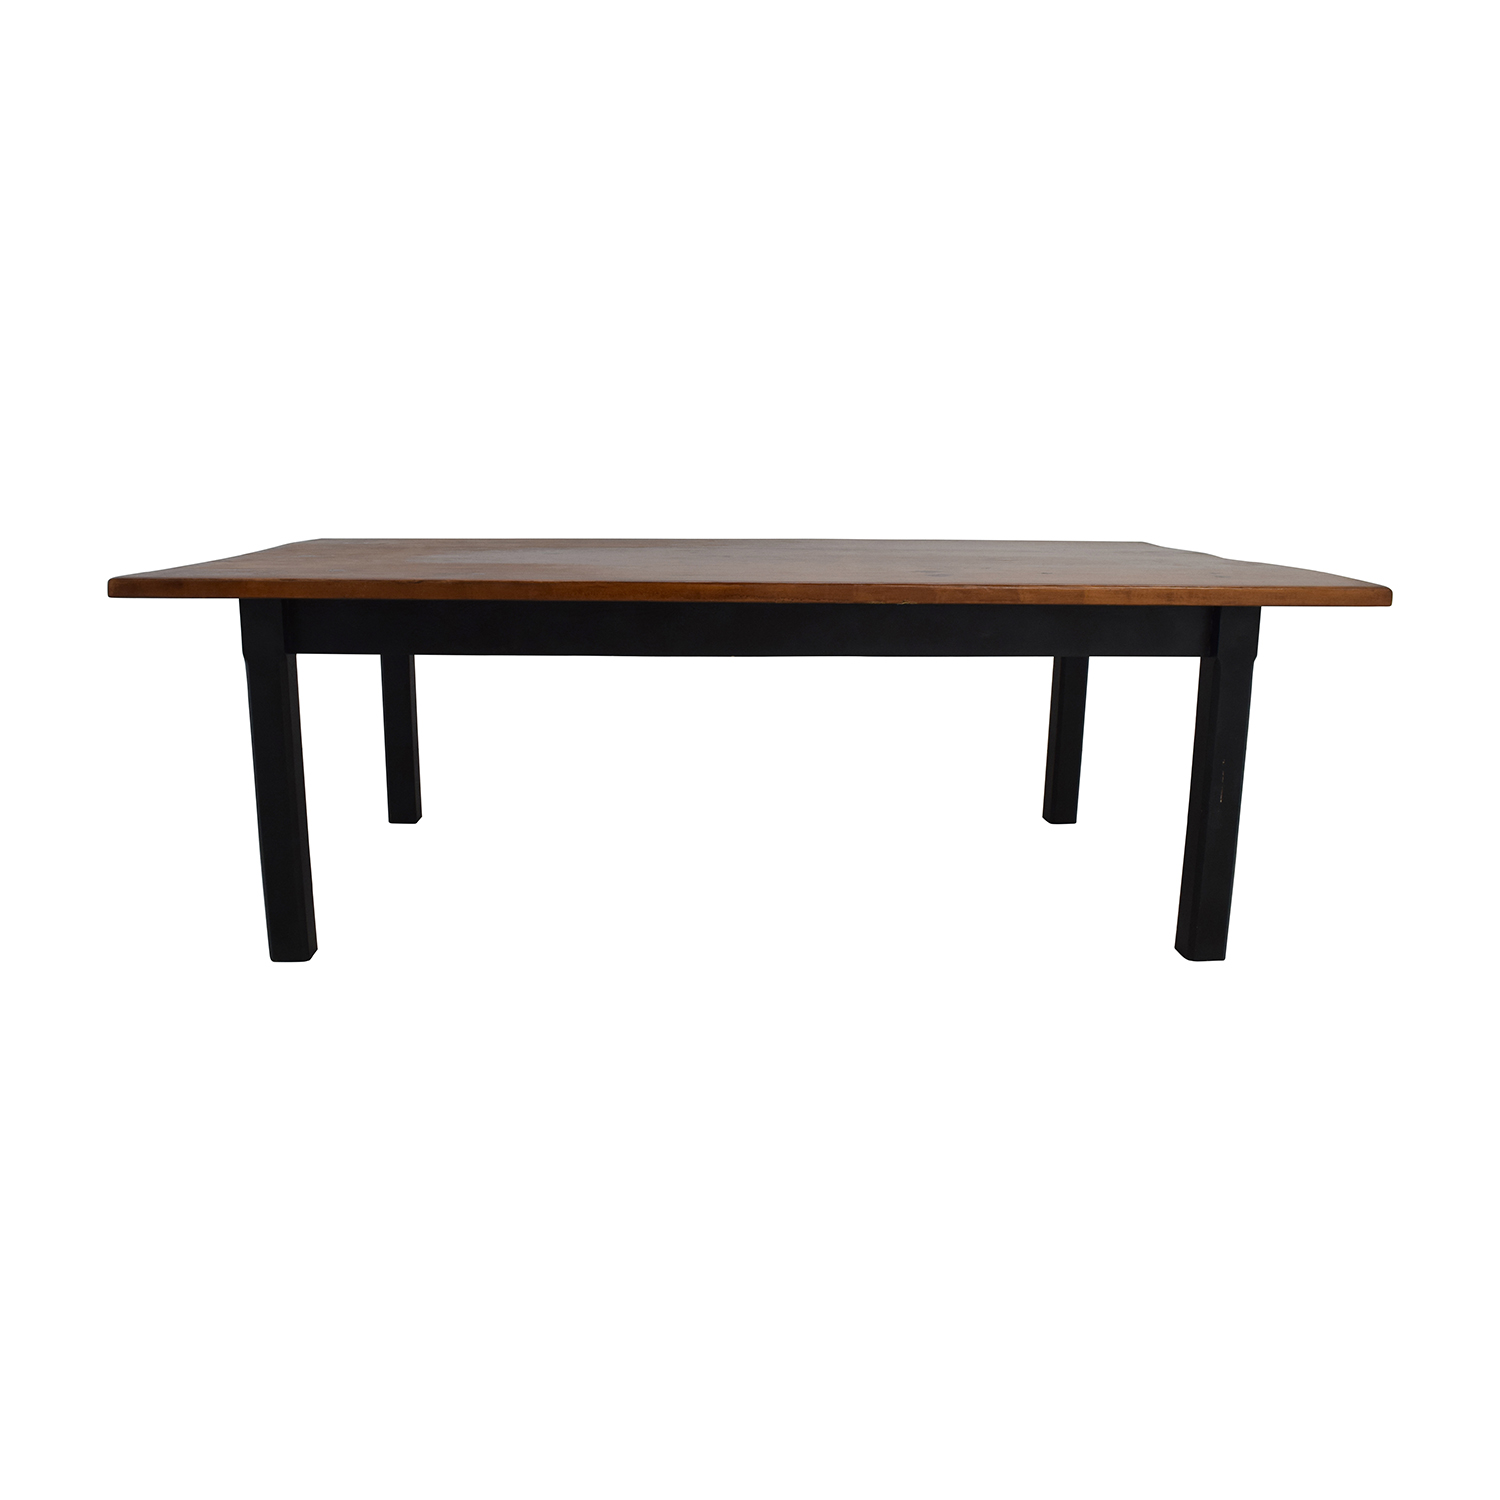 buy American antique American Antique 1890 Circa Walnut Dining Room Table online